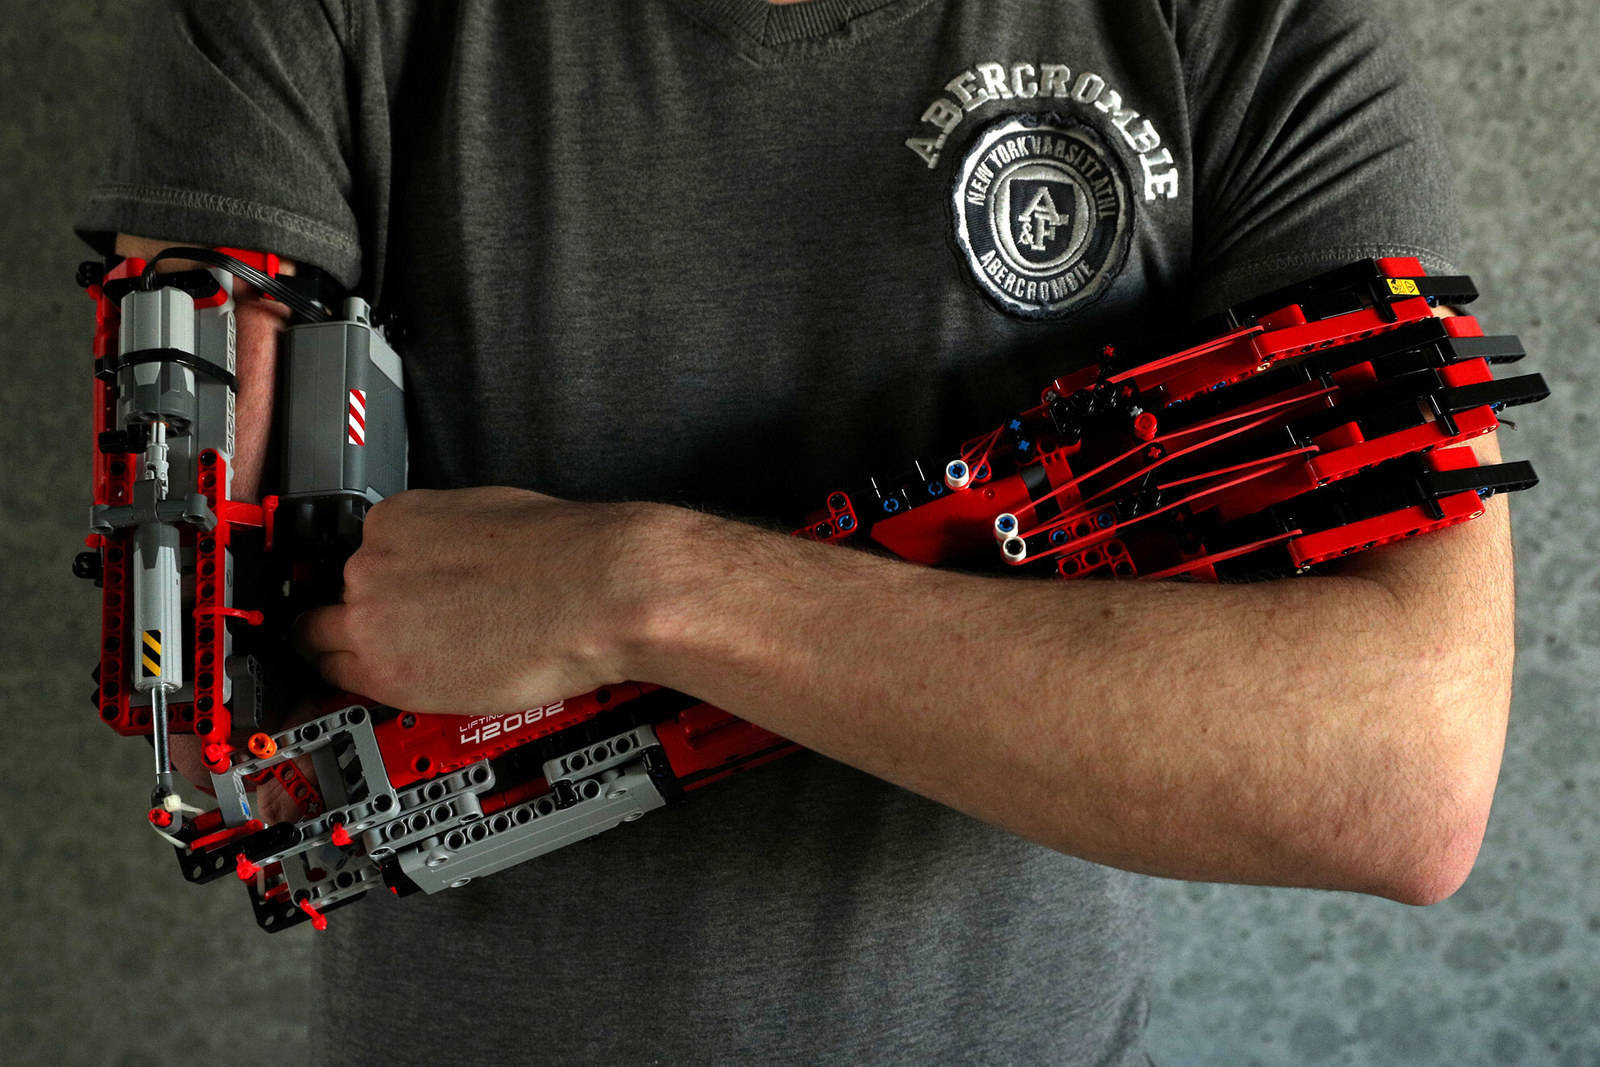 David Aguliar poses with his prosthetic arm built with Lego pieces during an interview with Reuters in Sant Cugat del Valles, near Barcelona, Spain, on Feb. 4.